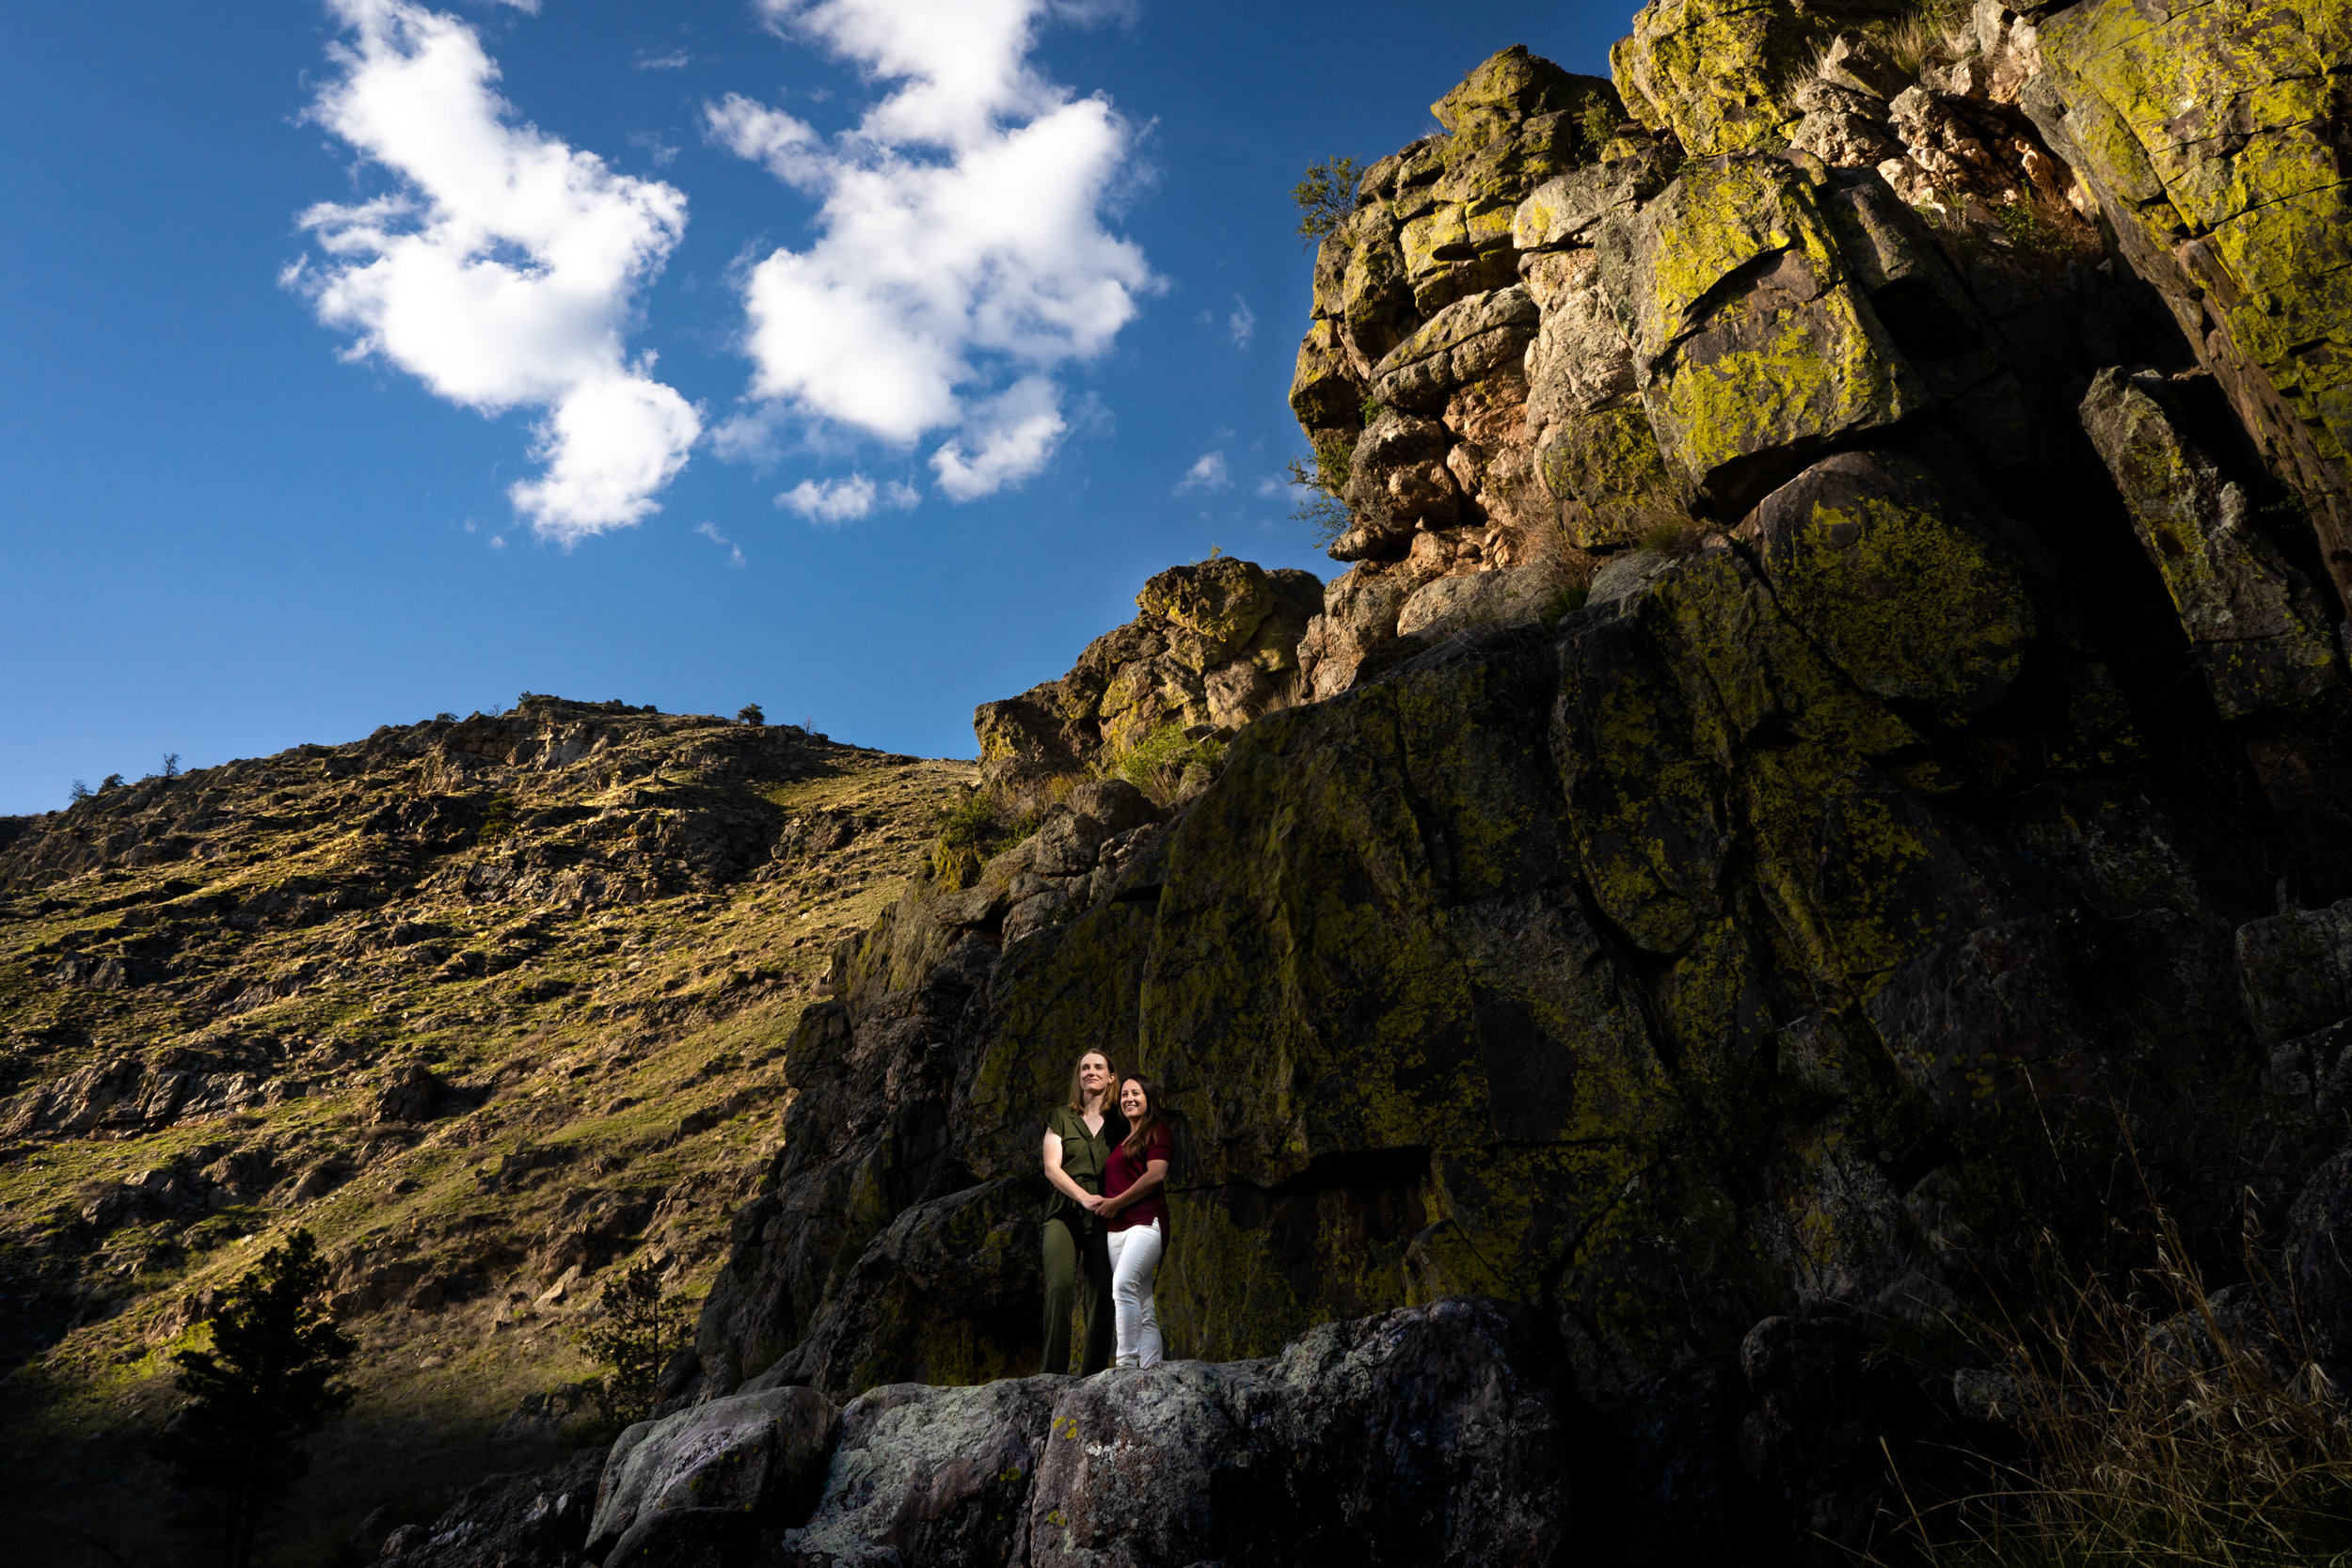 Poudre_Canyon_Engagement_Session.jpg